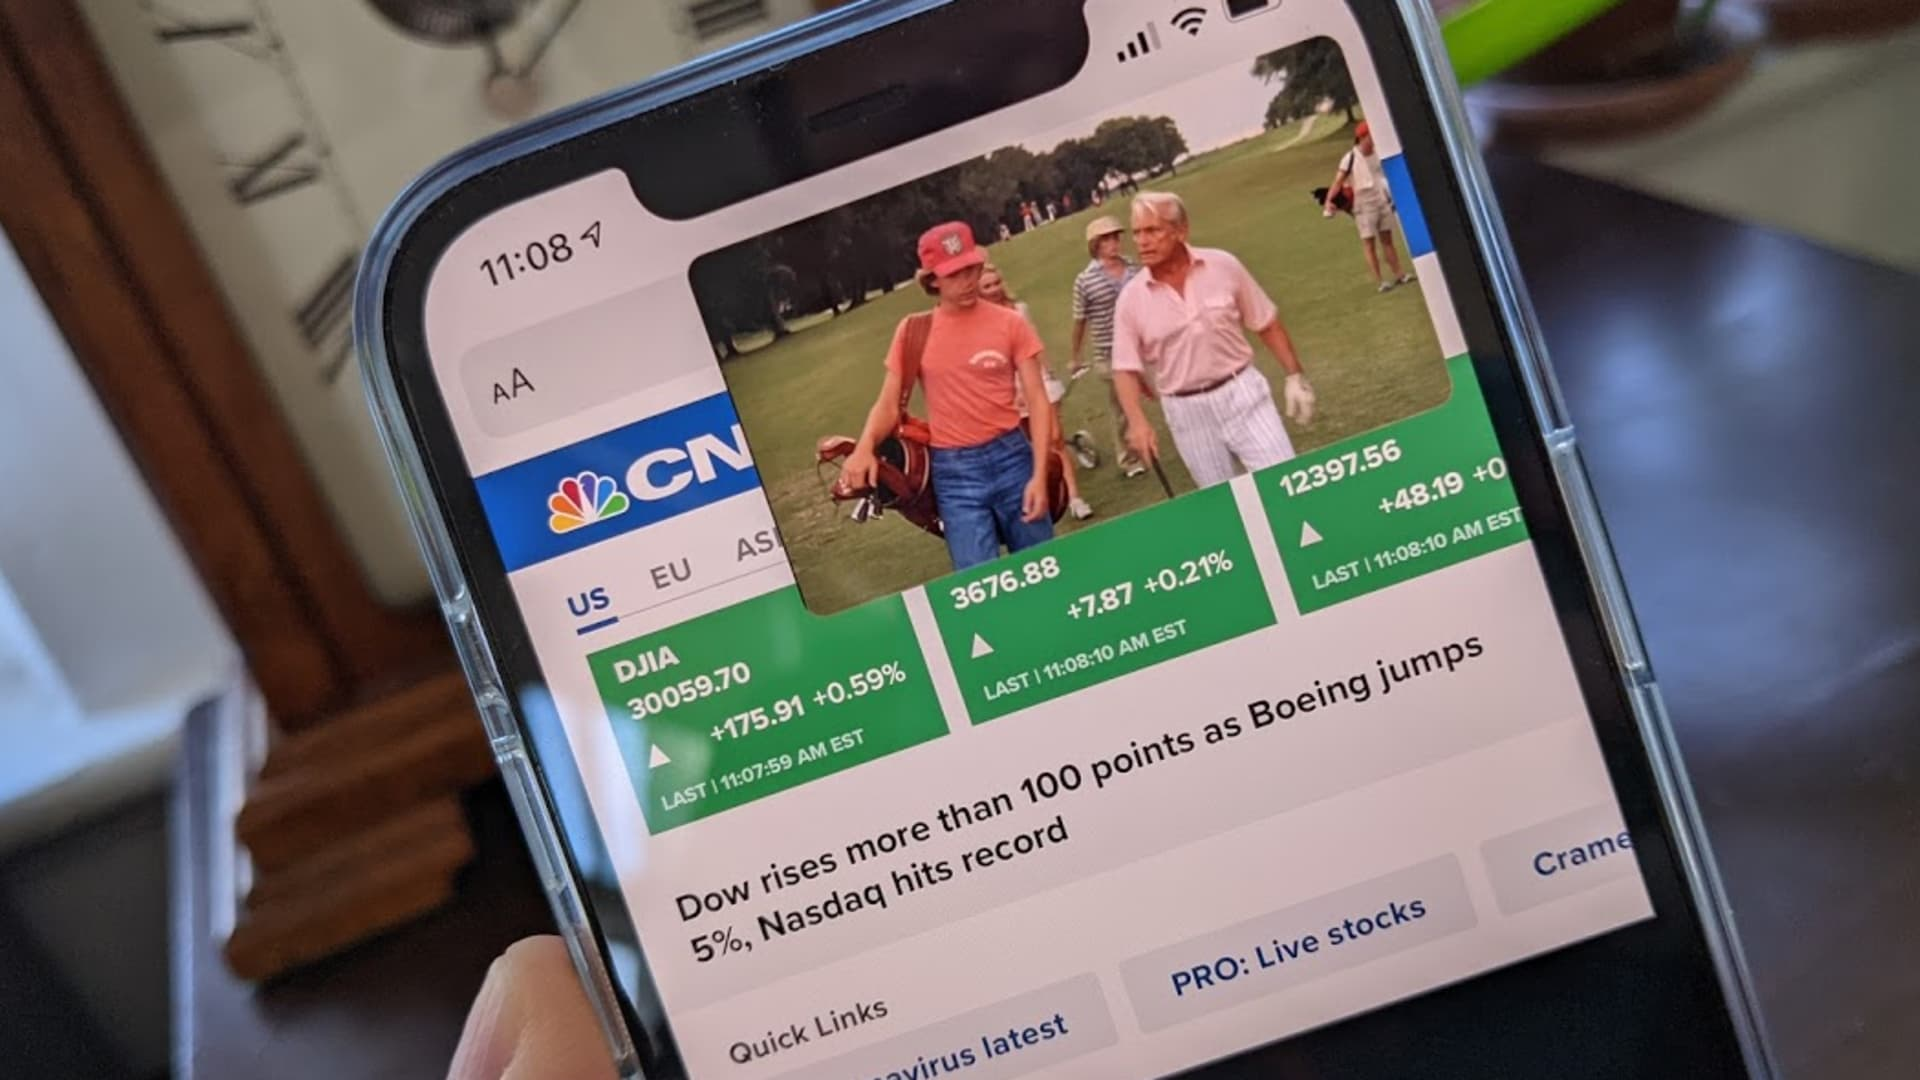 Using picture-in-picture on an iPhone running iOS 14